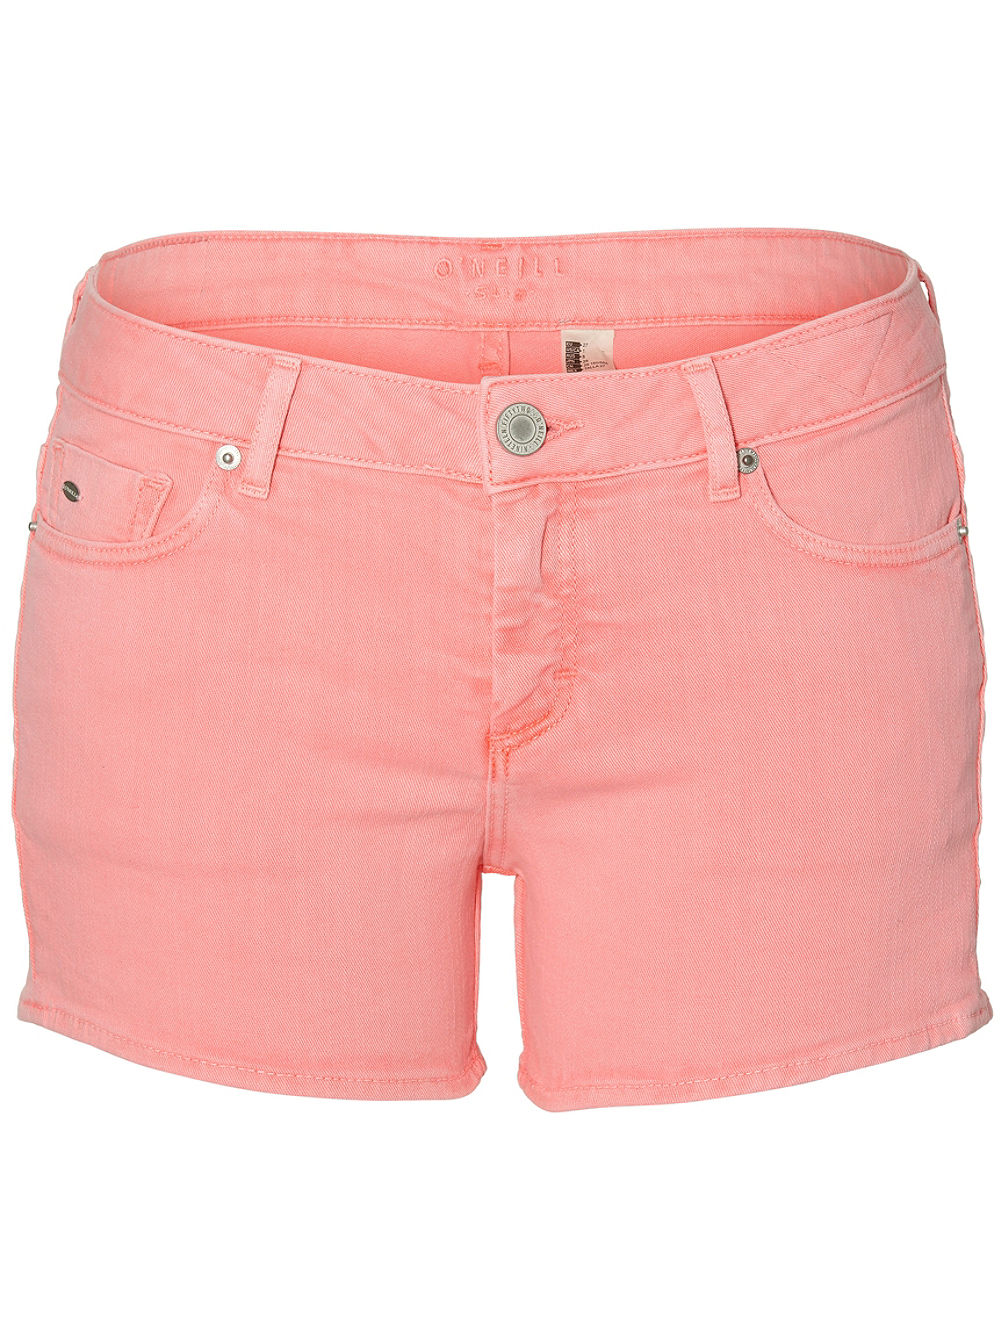 Essentials 5 Pkt Shorts